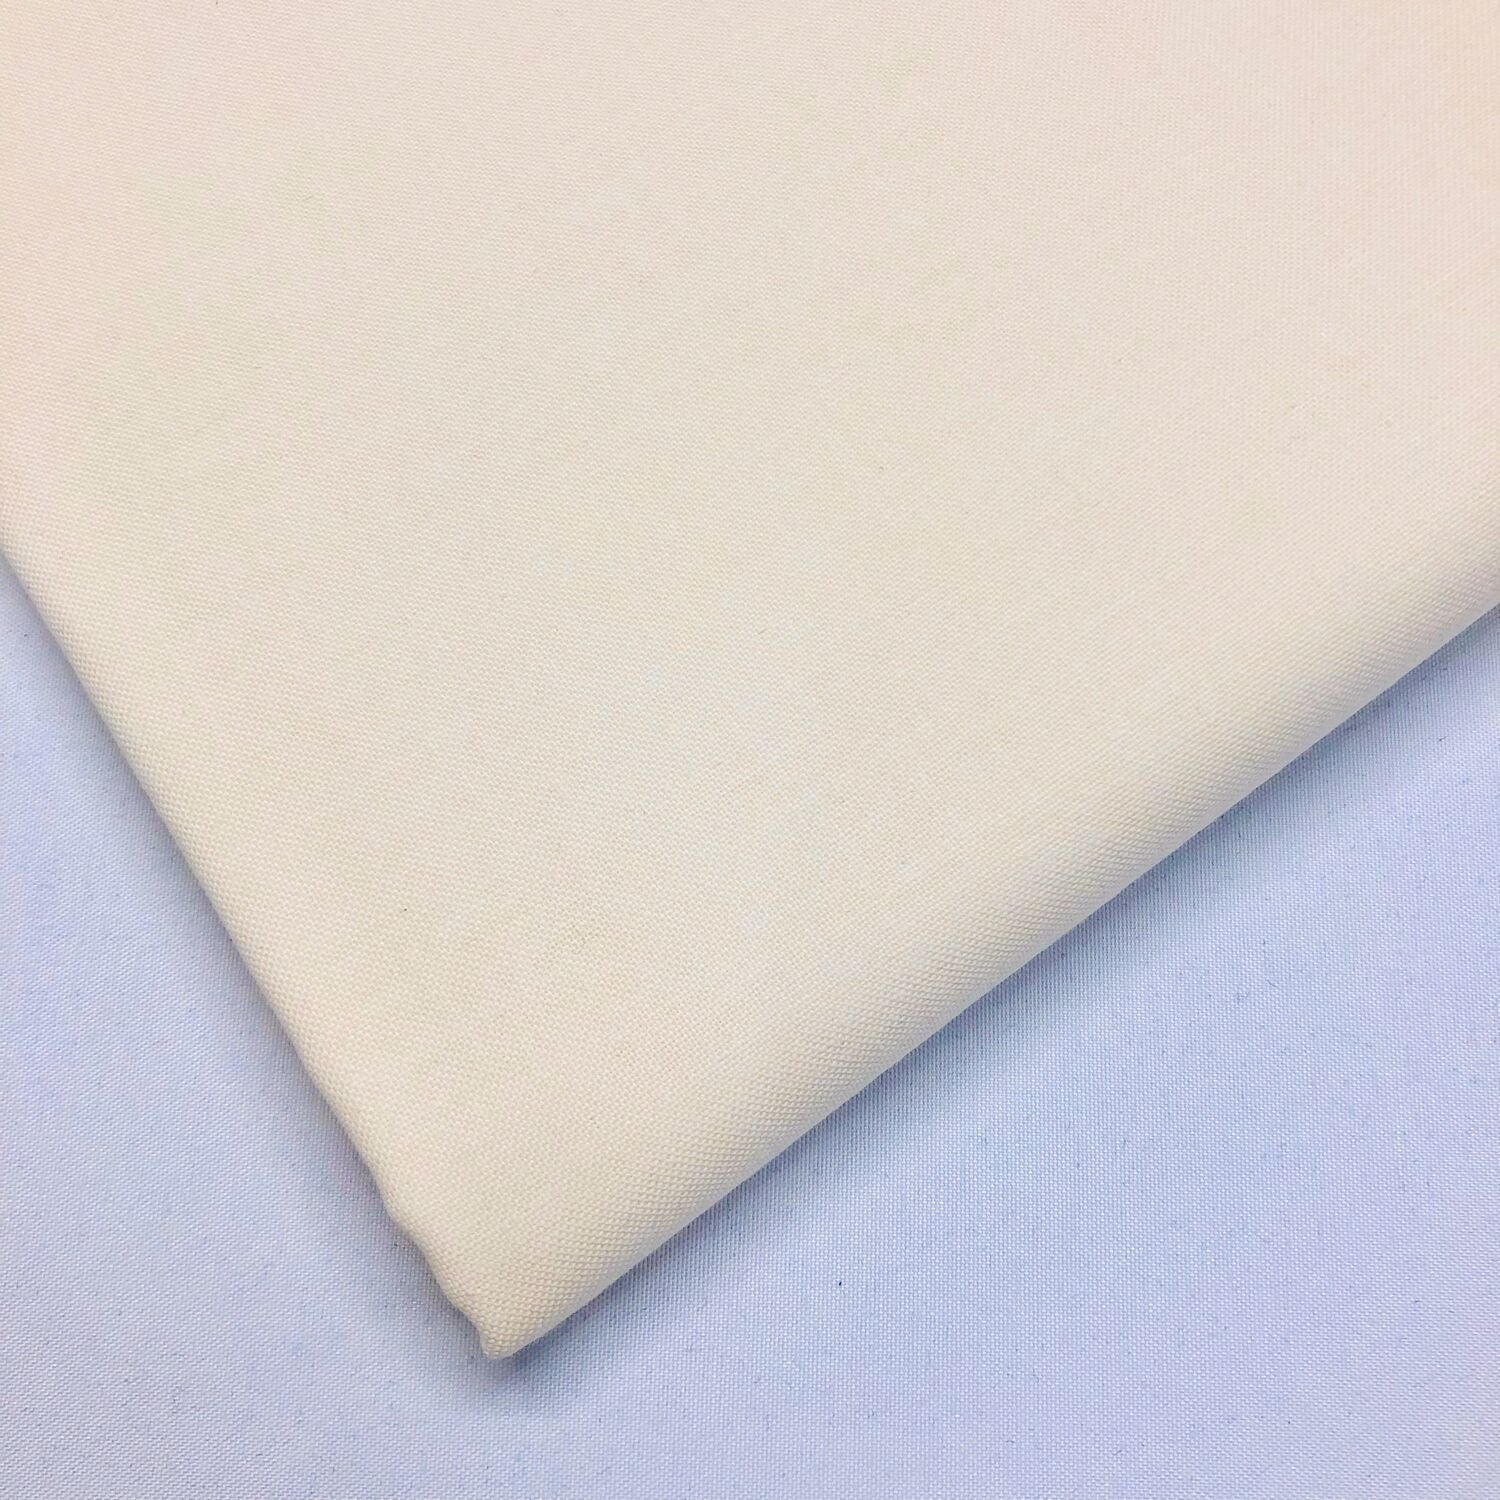 Plain cream - 100% cotton